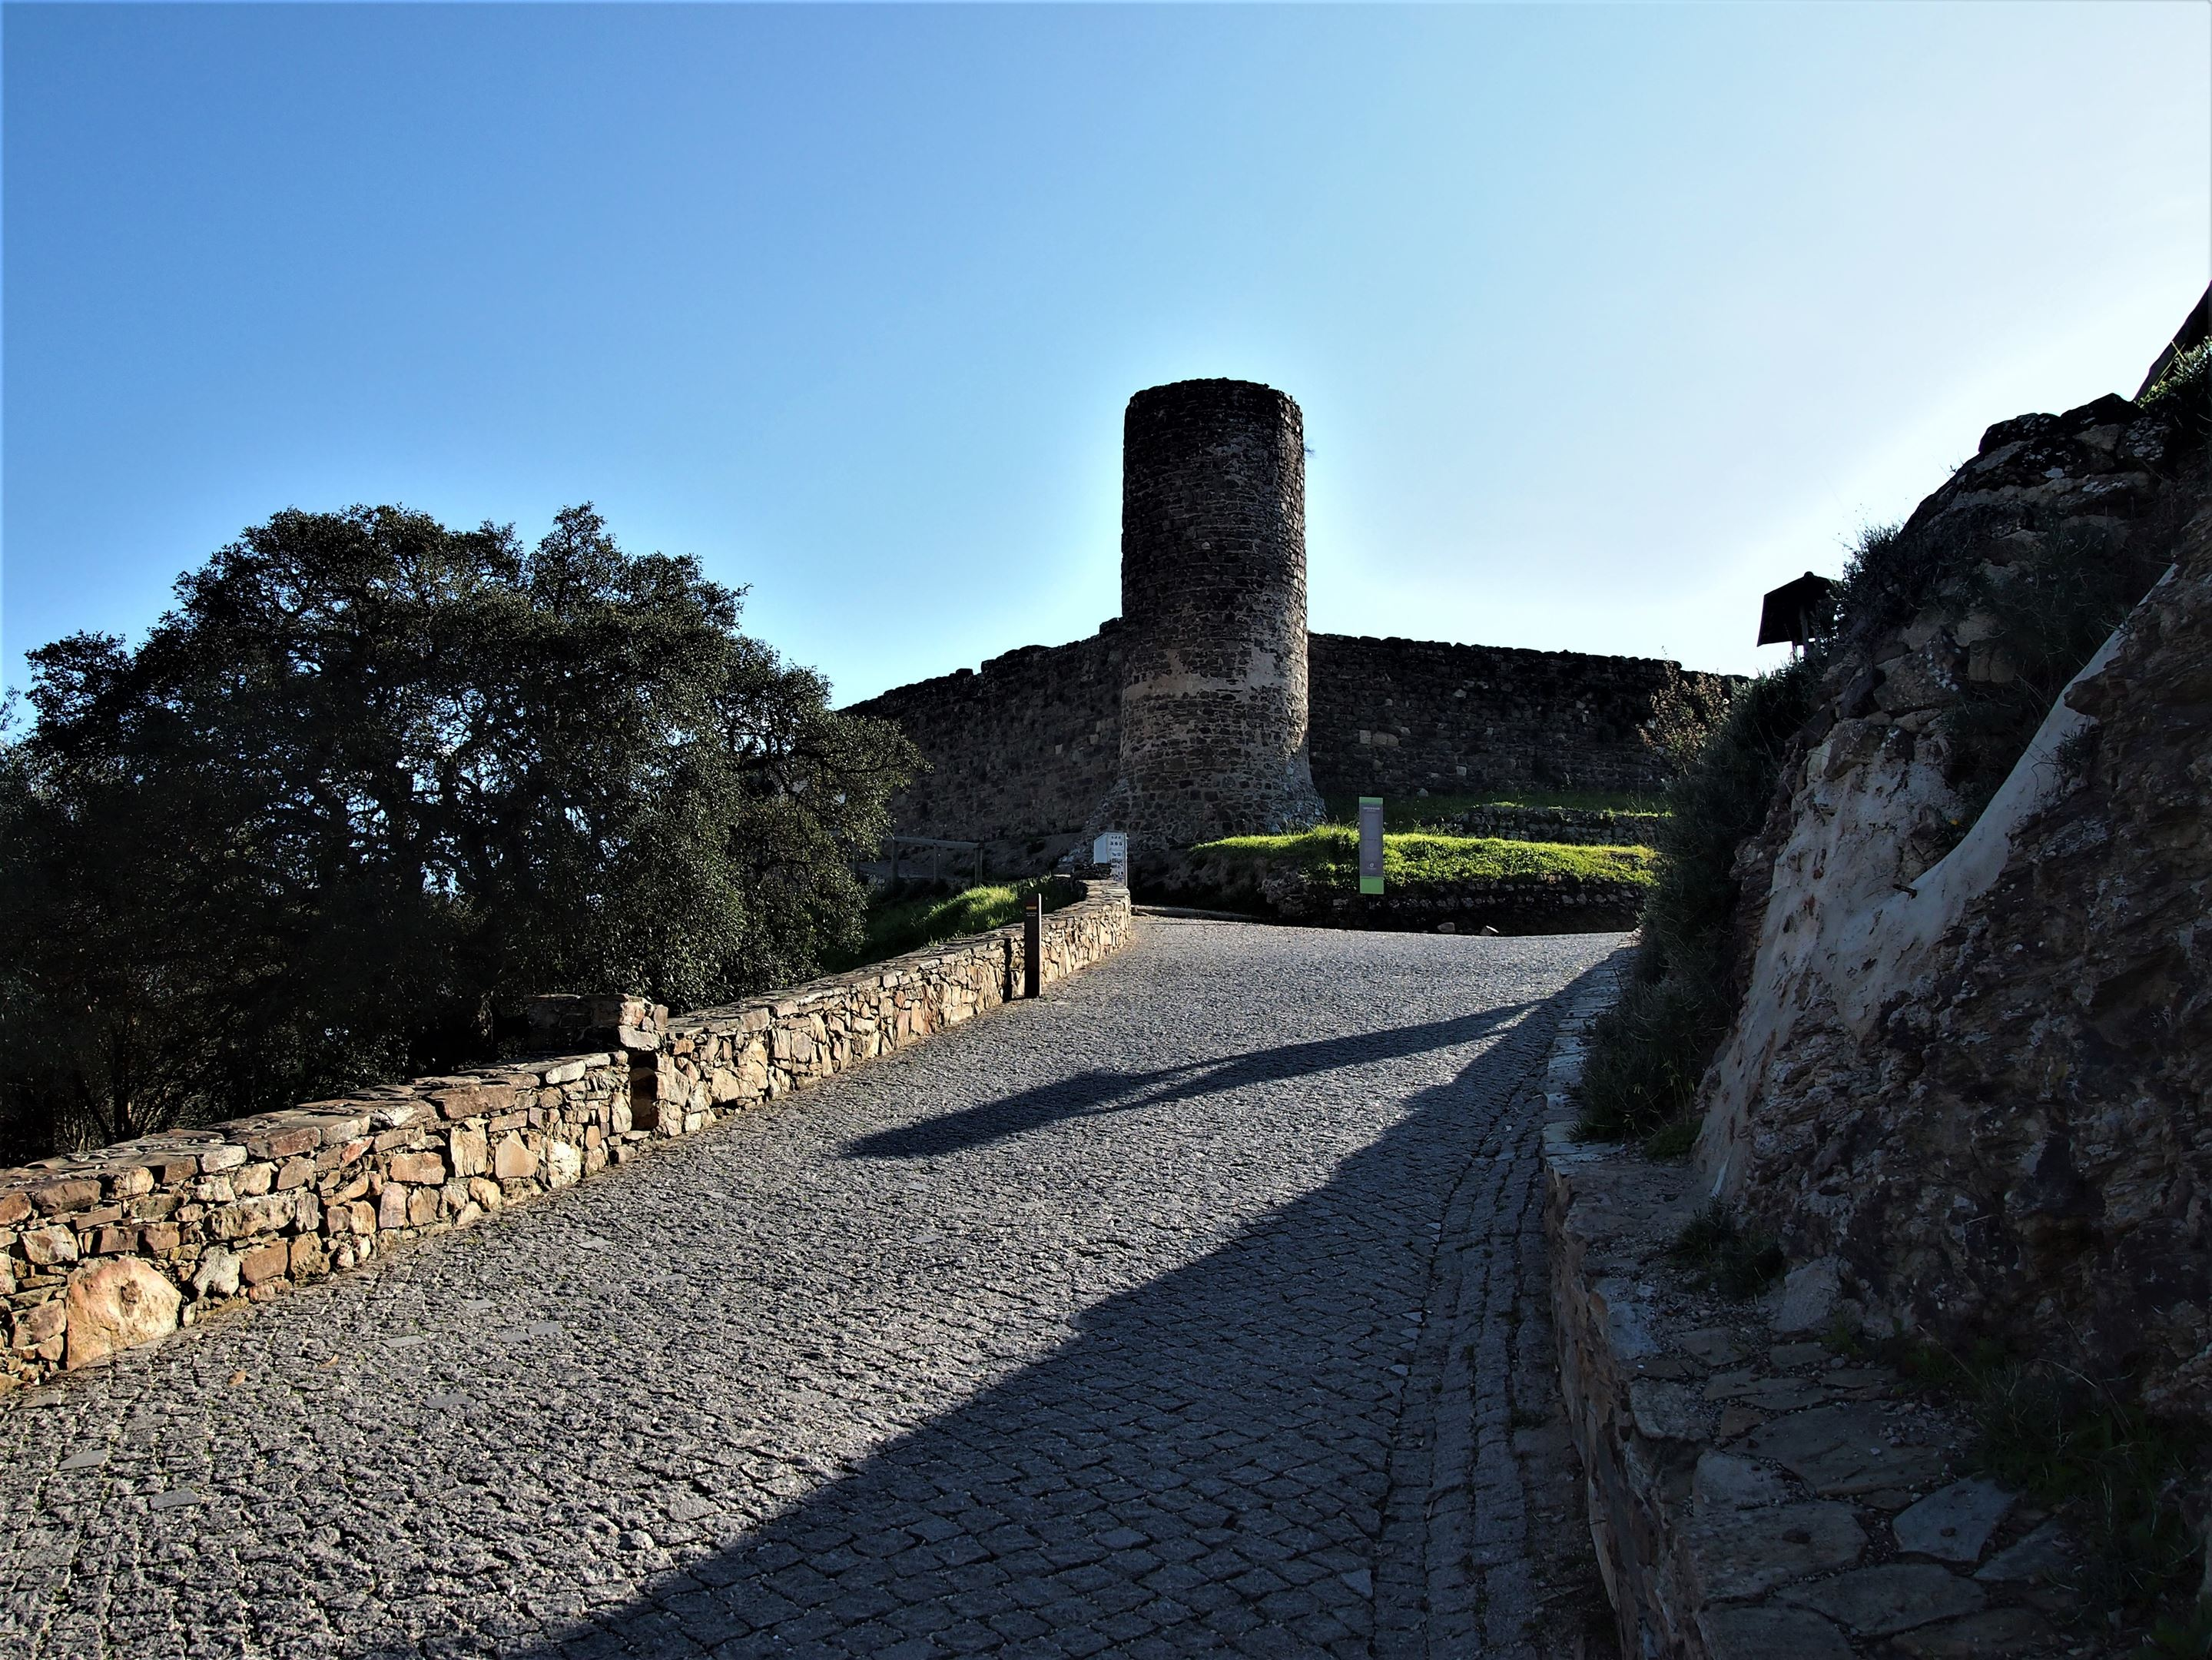 Approaching the remains of Aljezur Castle, Algarve